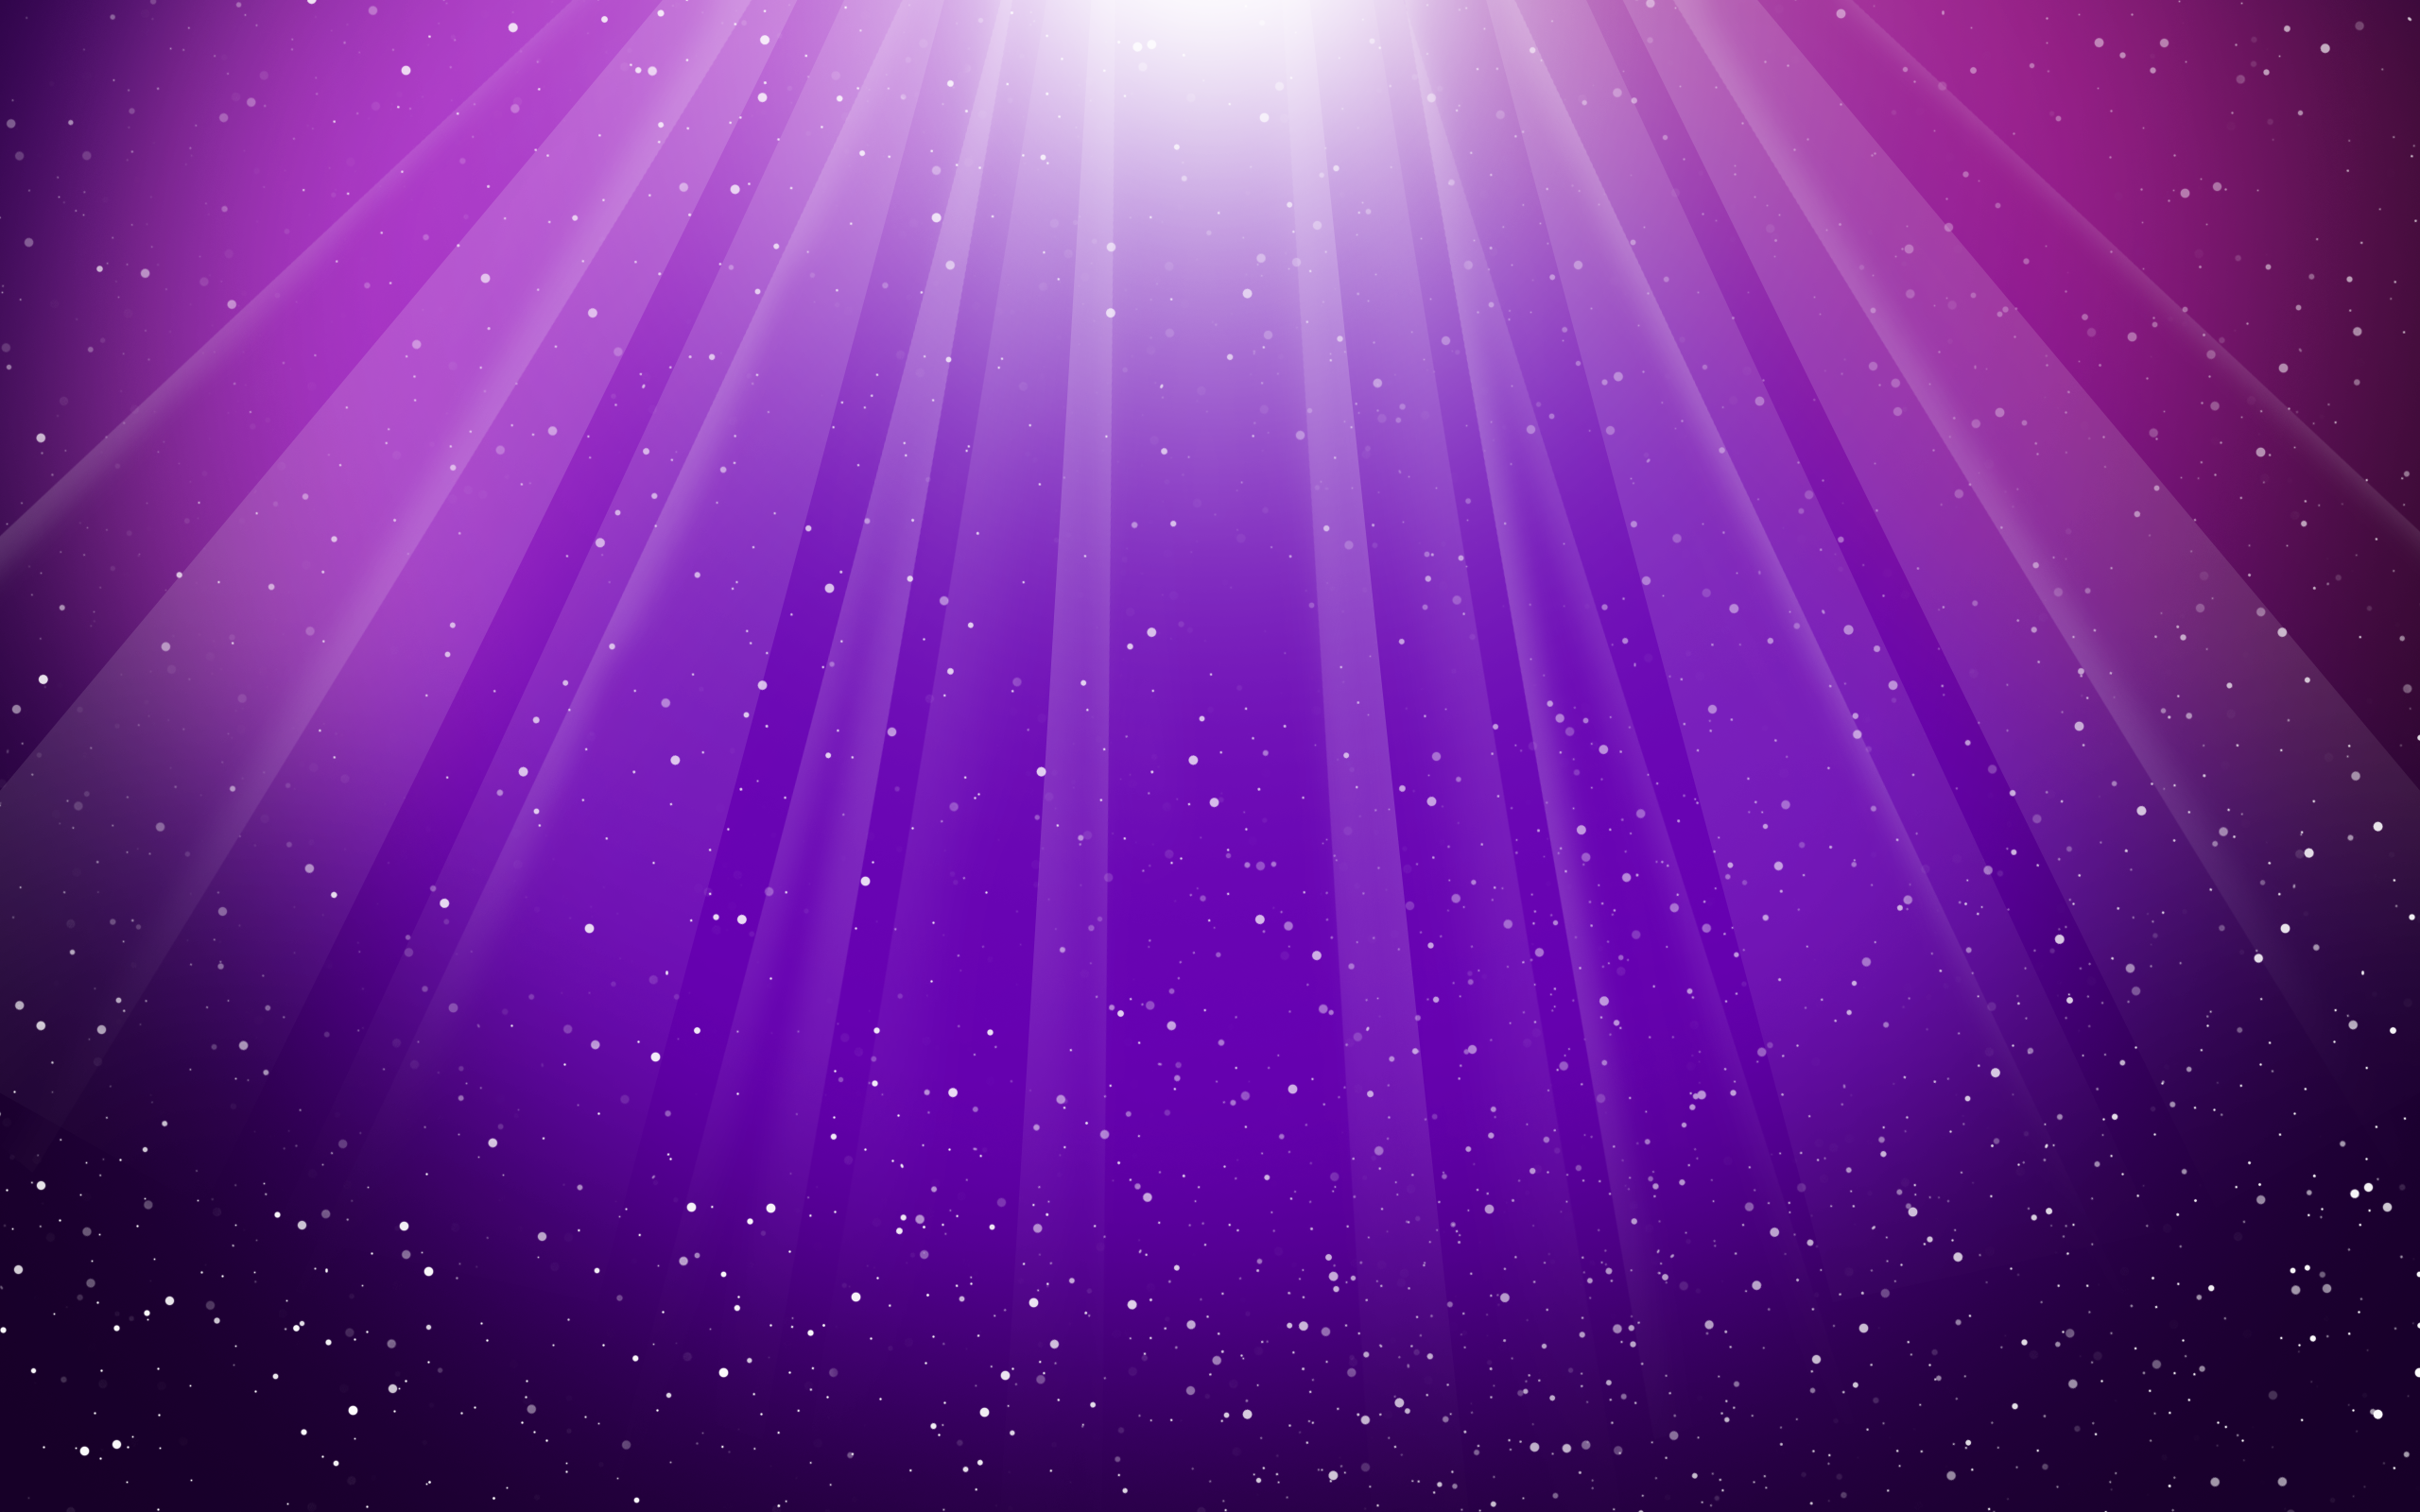 Purple wallpaper 1 2560x1600